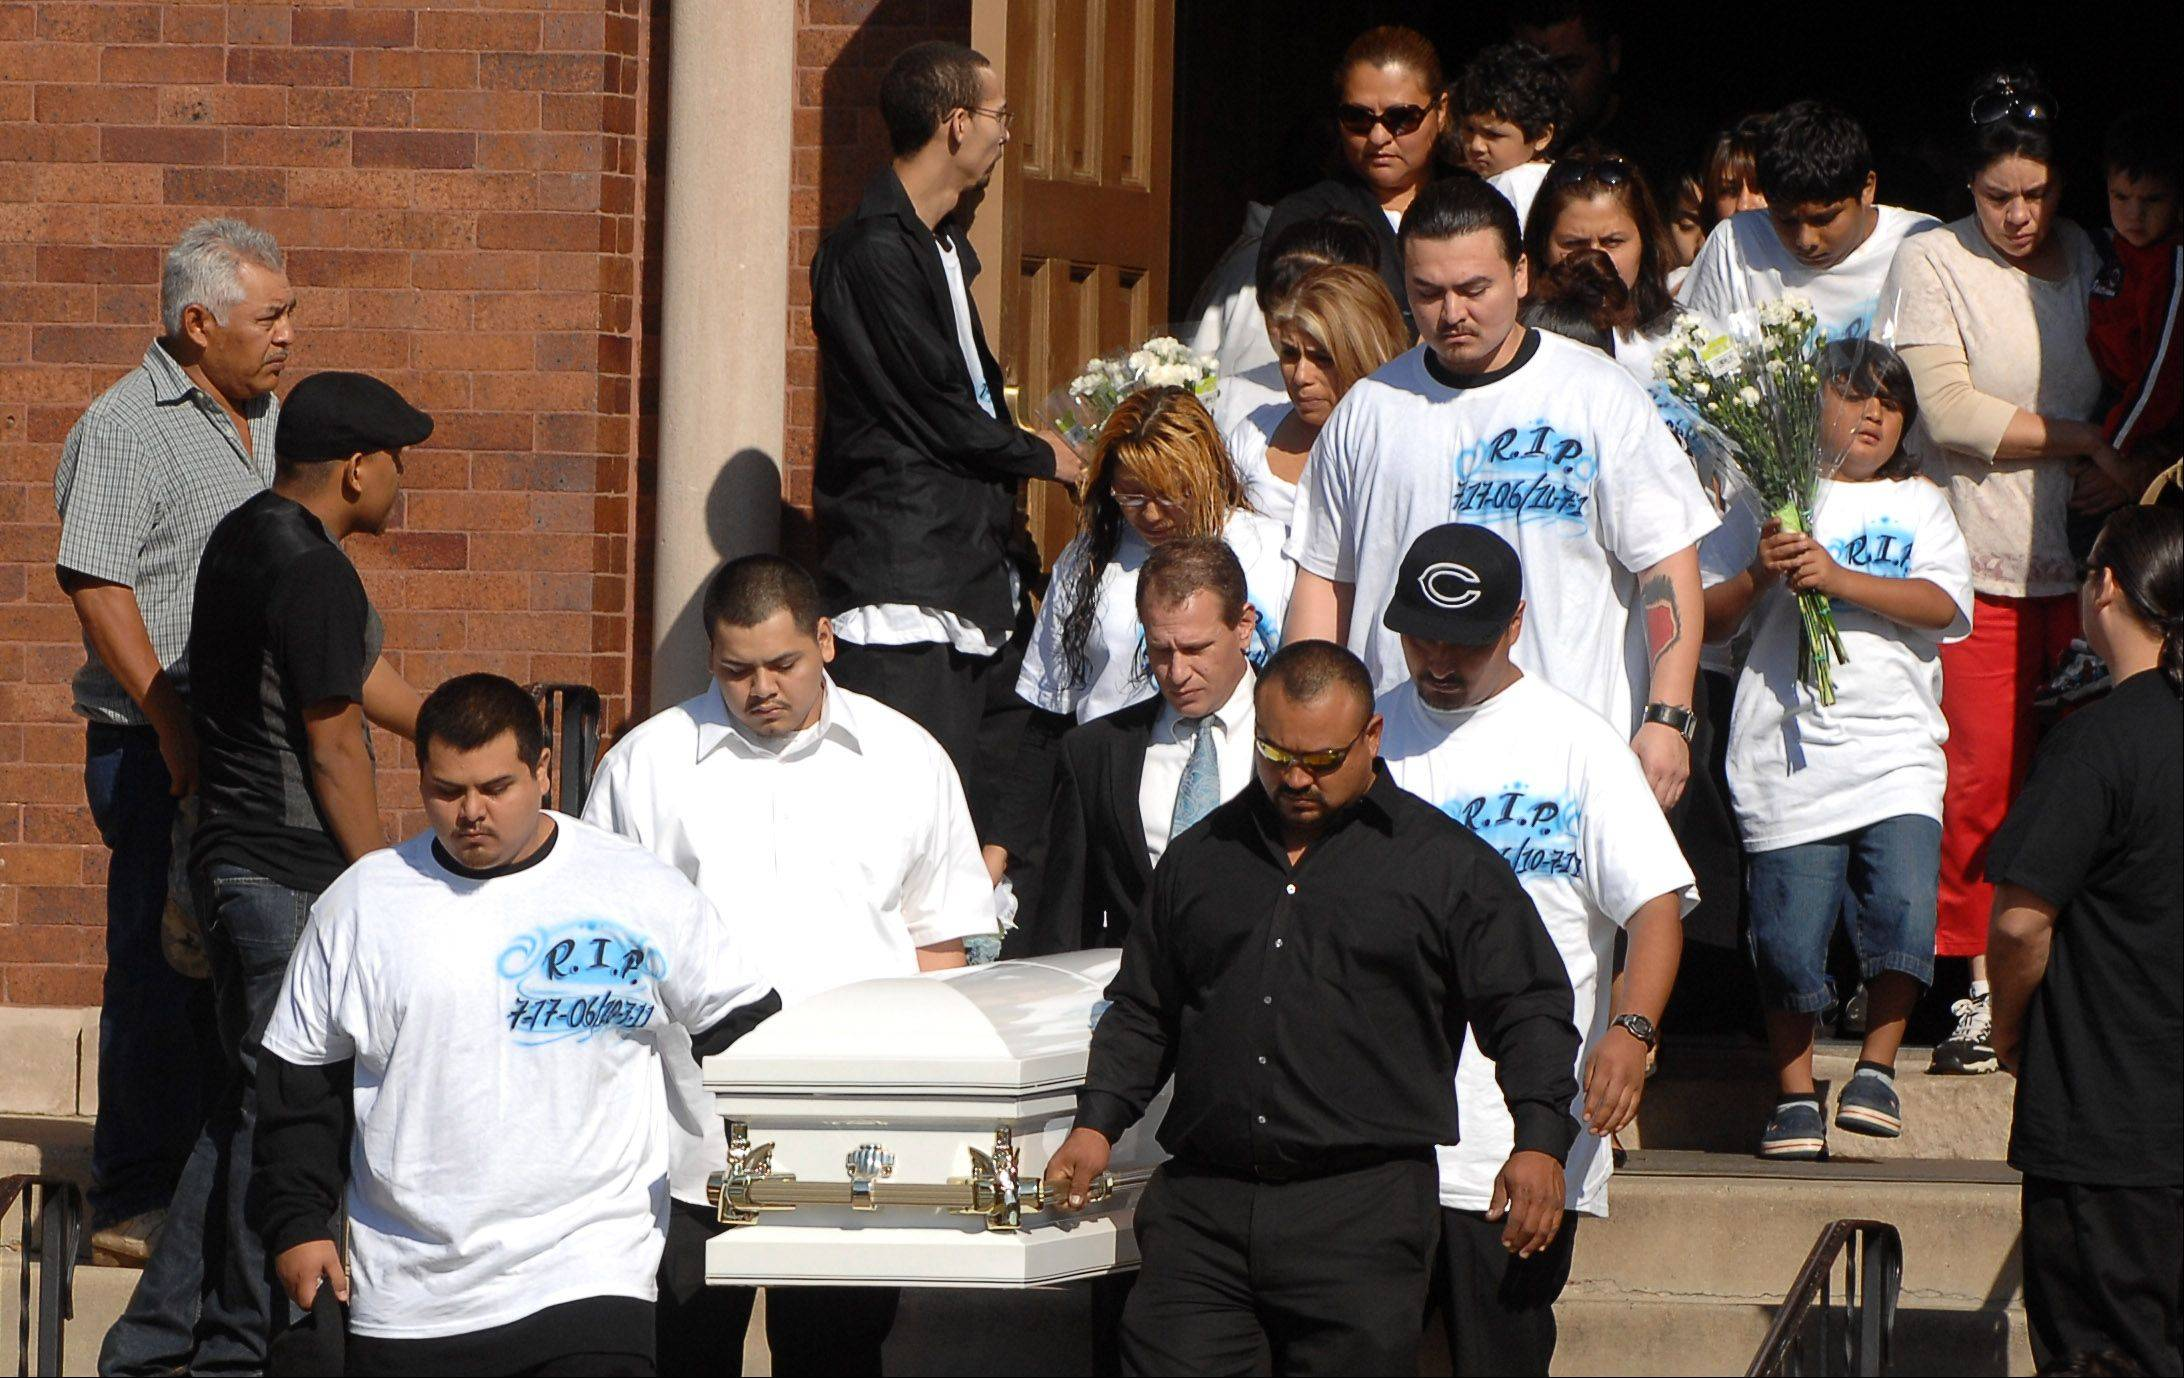 Hundreds attend funeral of 5-year-old boy killed in Elgin